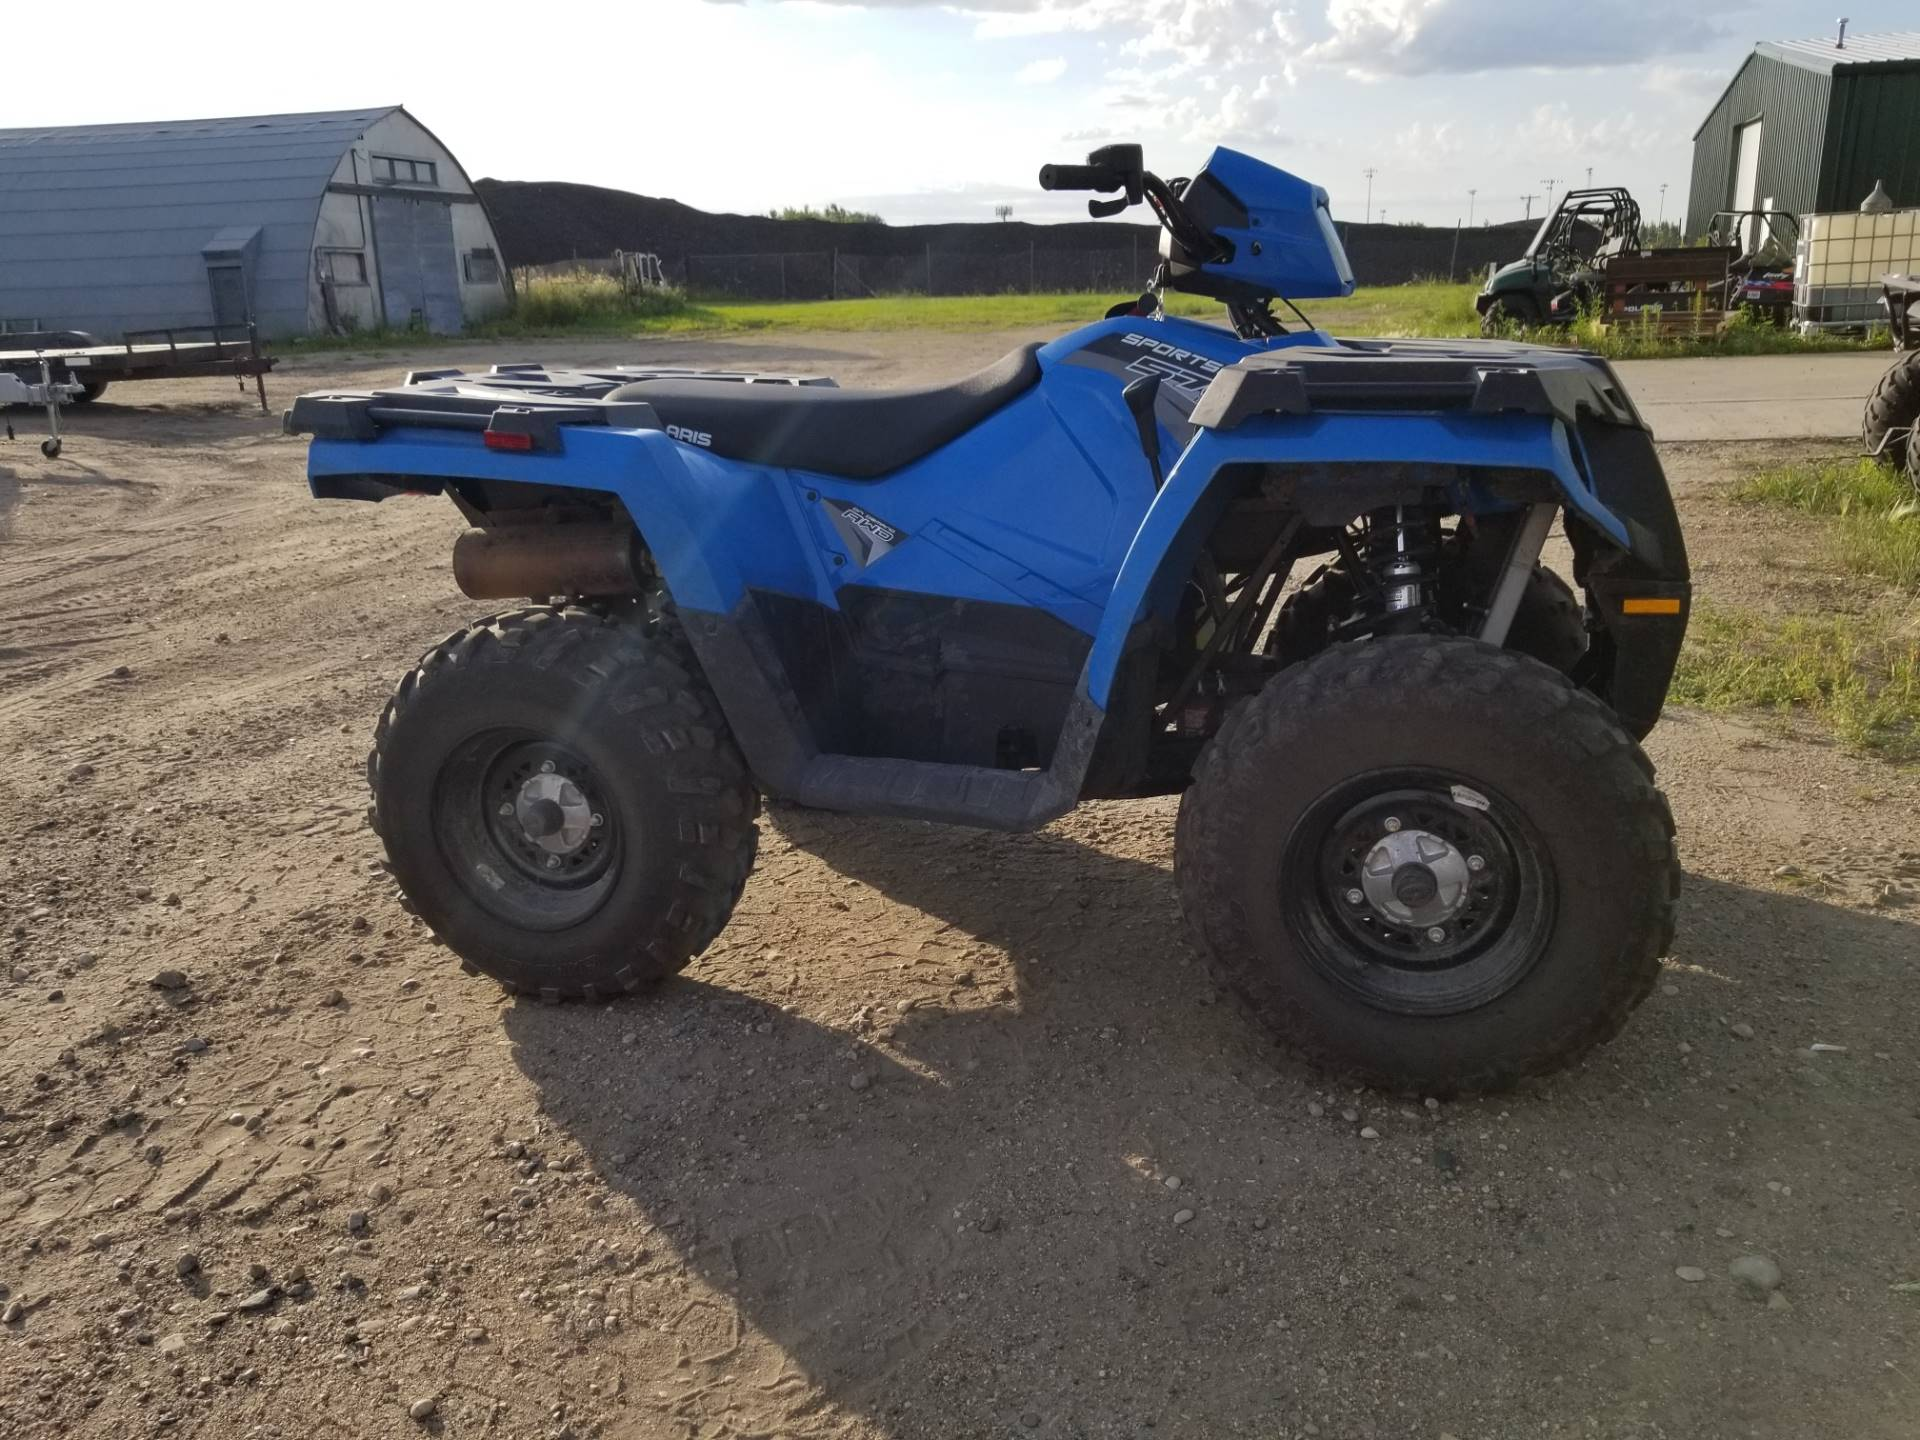 2019 Polaris Sportsman 570 in Devils Lake, North Dakota - Photo 2